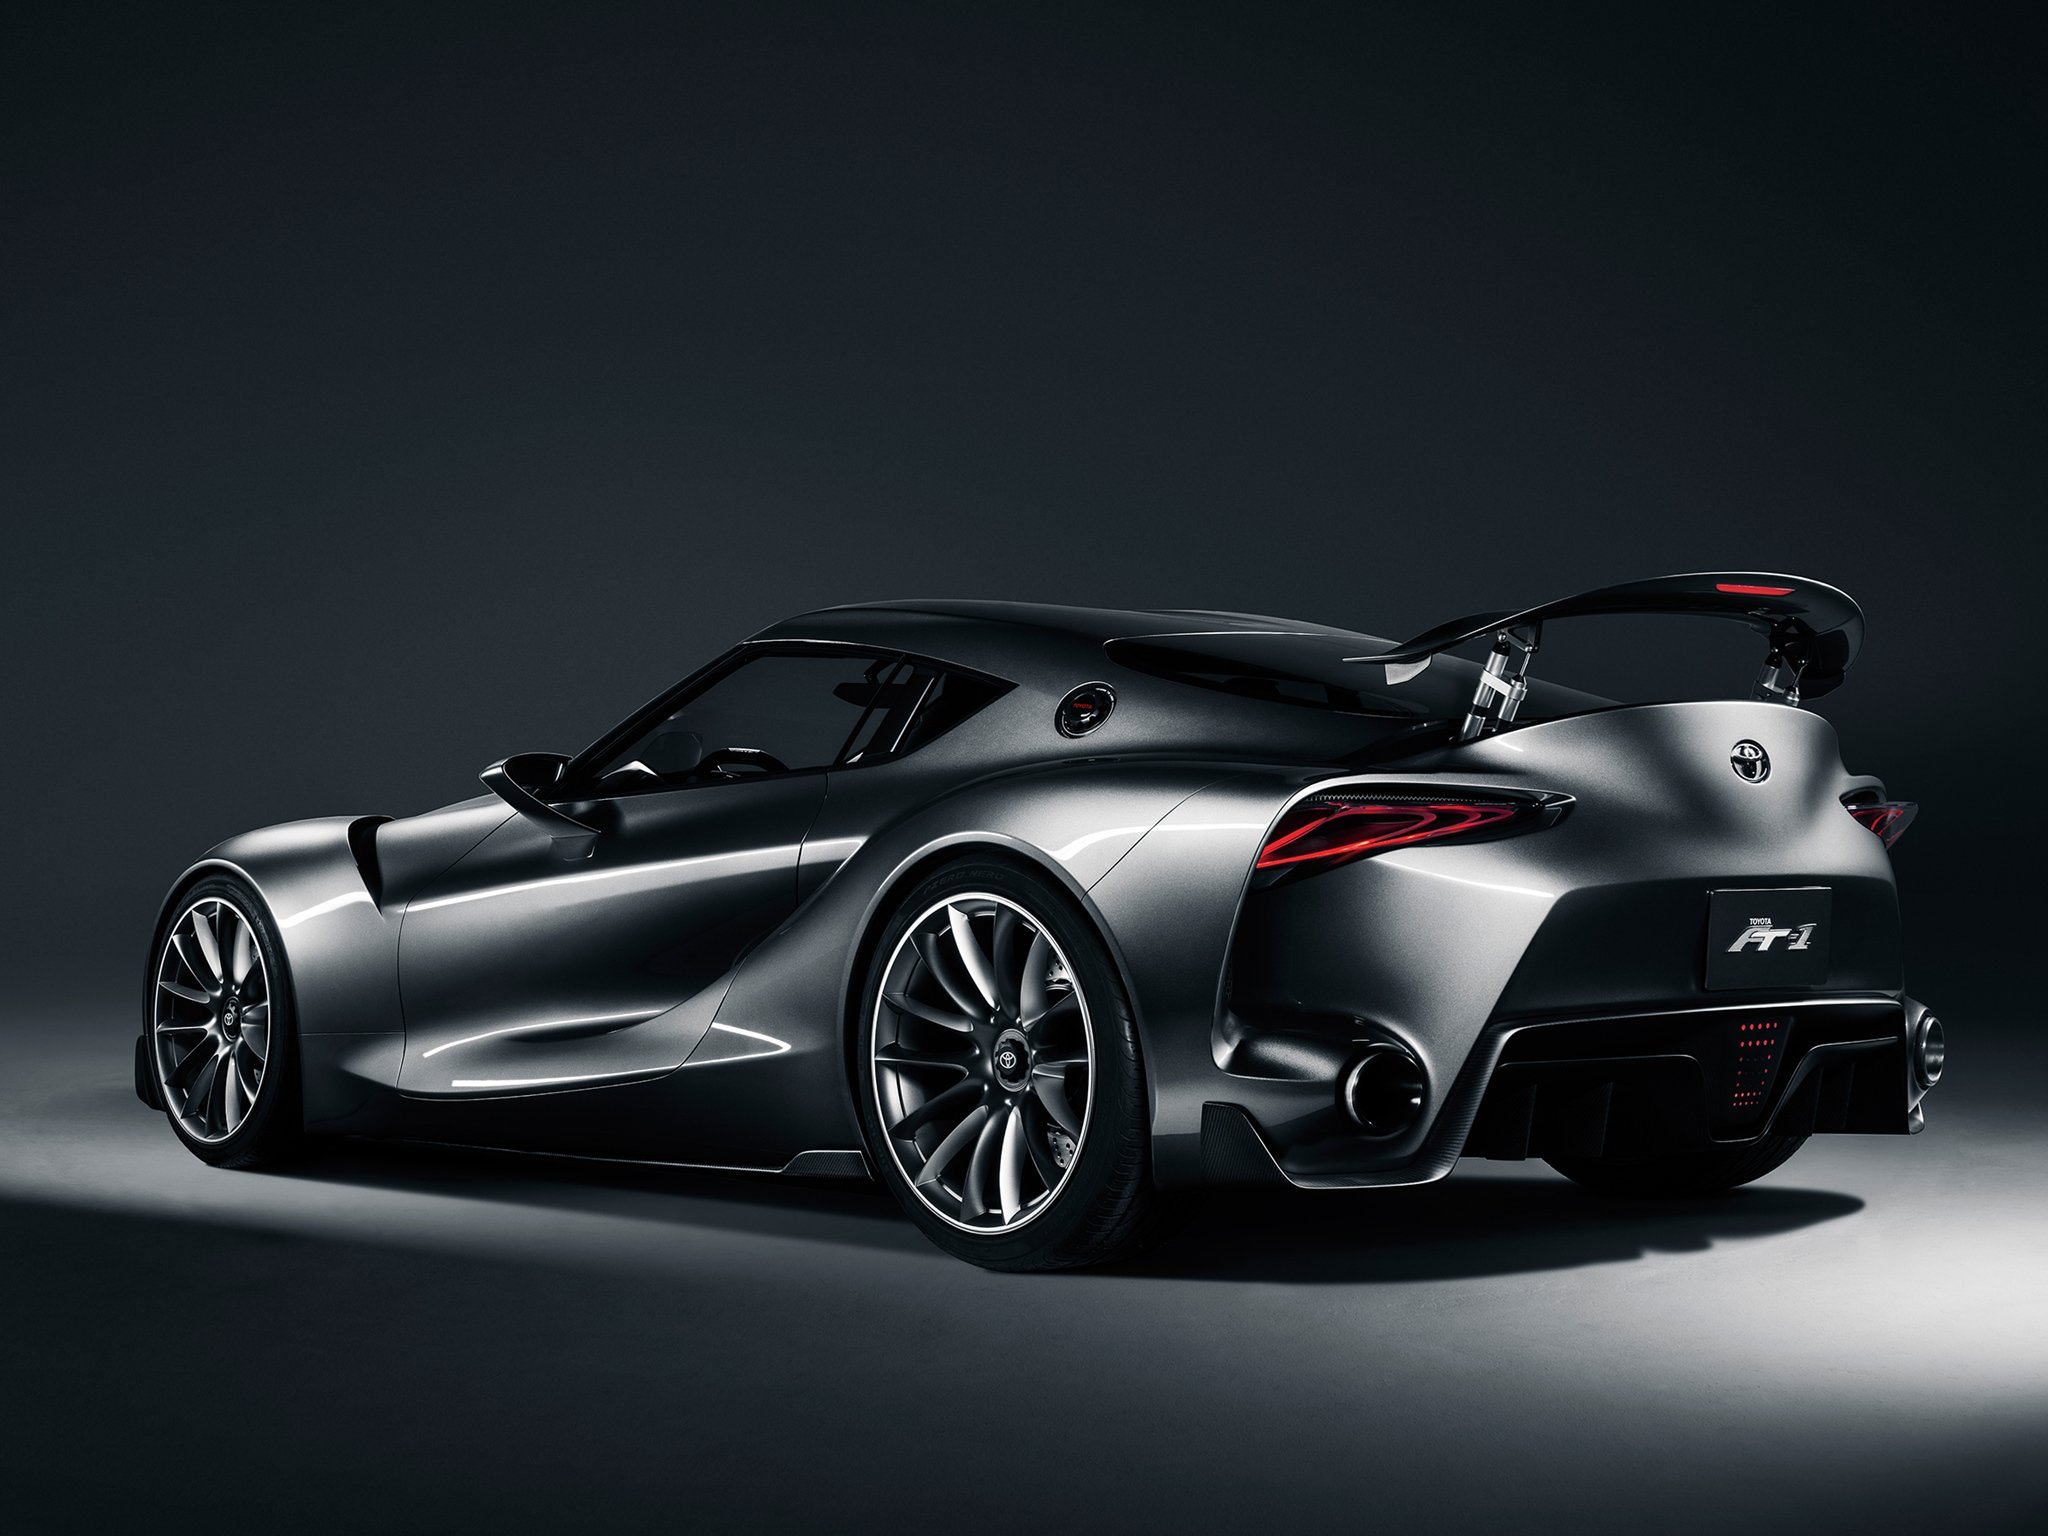 Ft 1 Supercars, Toyota Ft1, Cars Concept Cars, Sport Car, 2014 Toyota ...